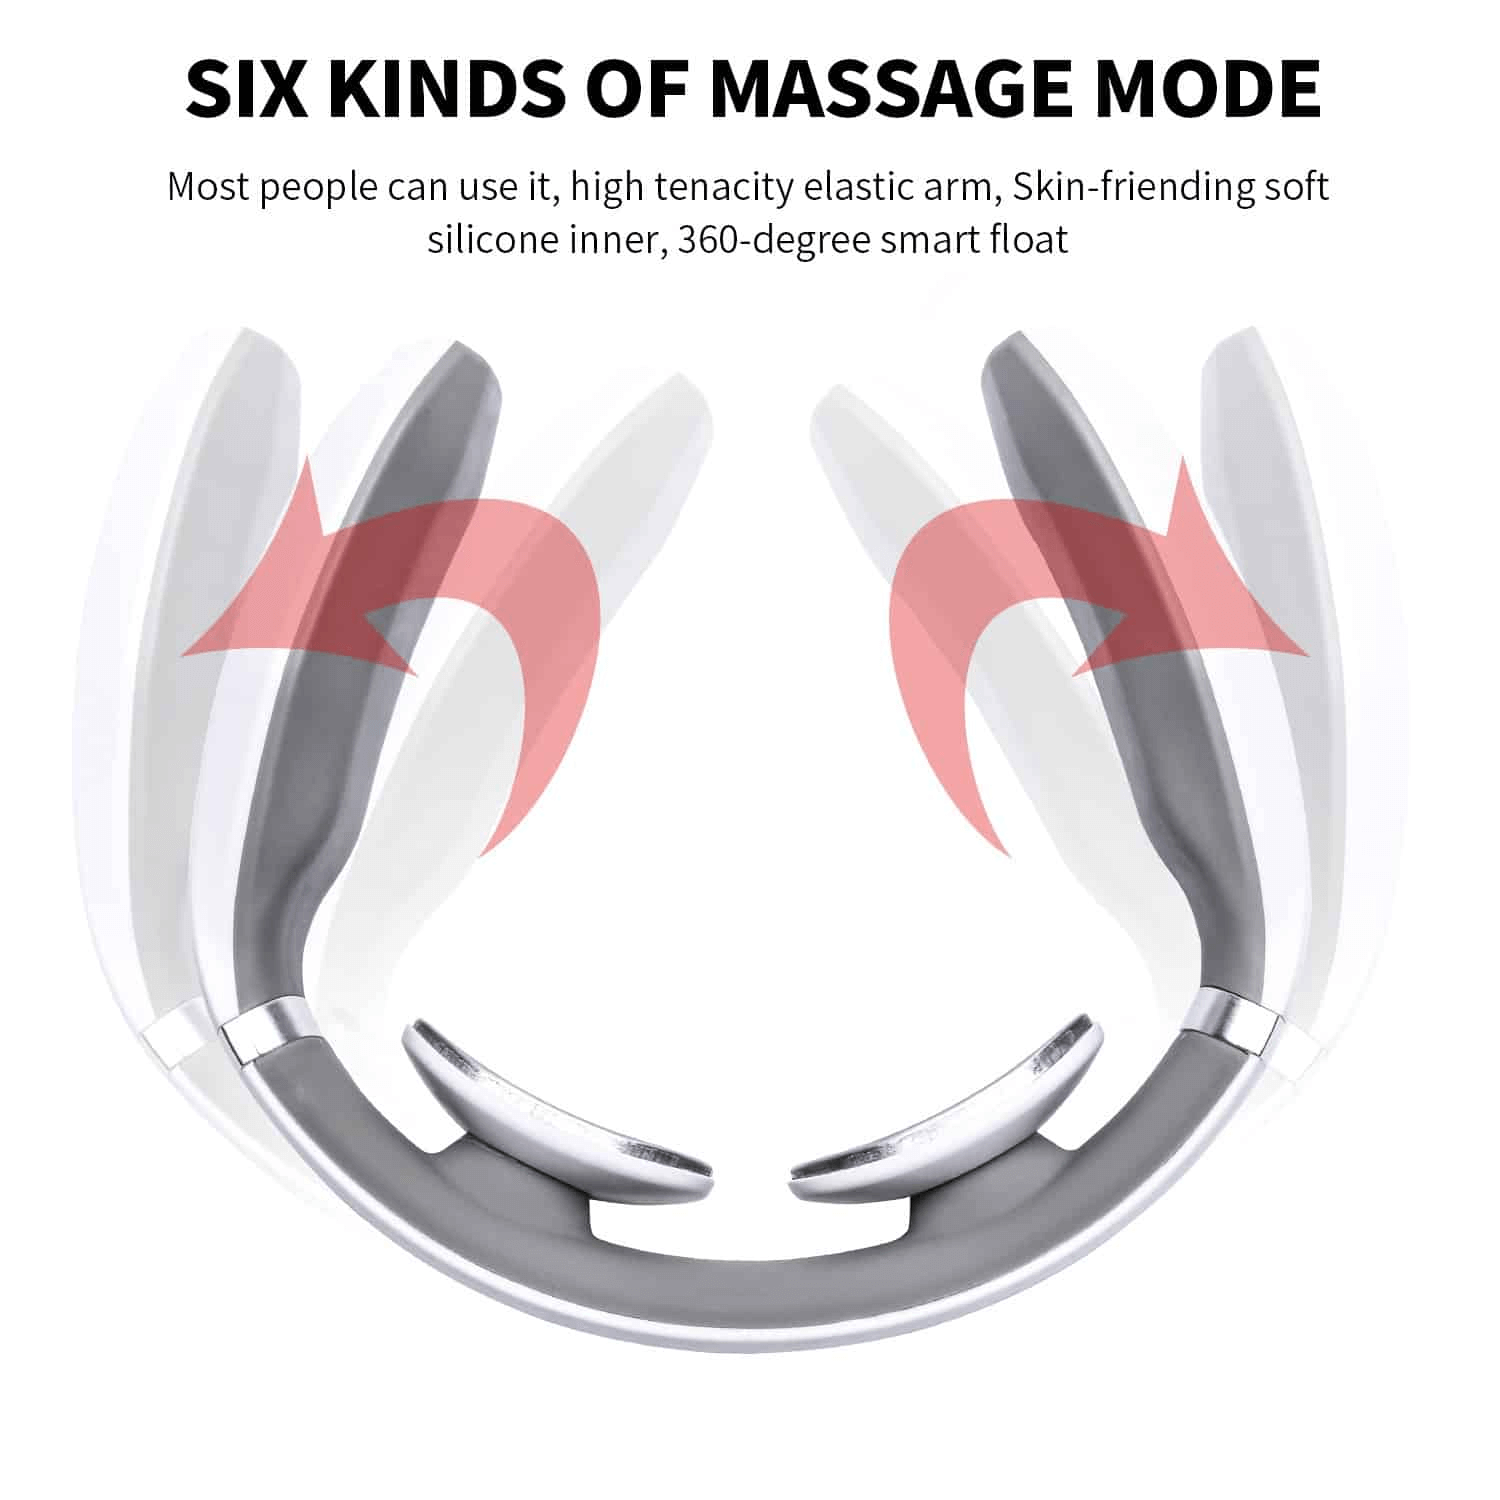 How To Give A Neck Massage